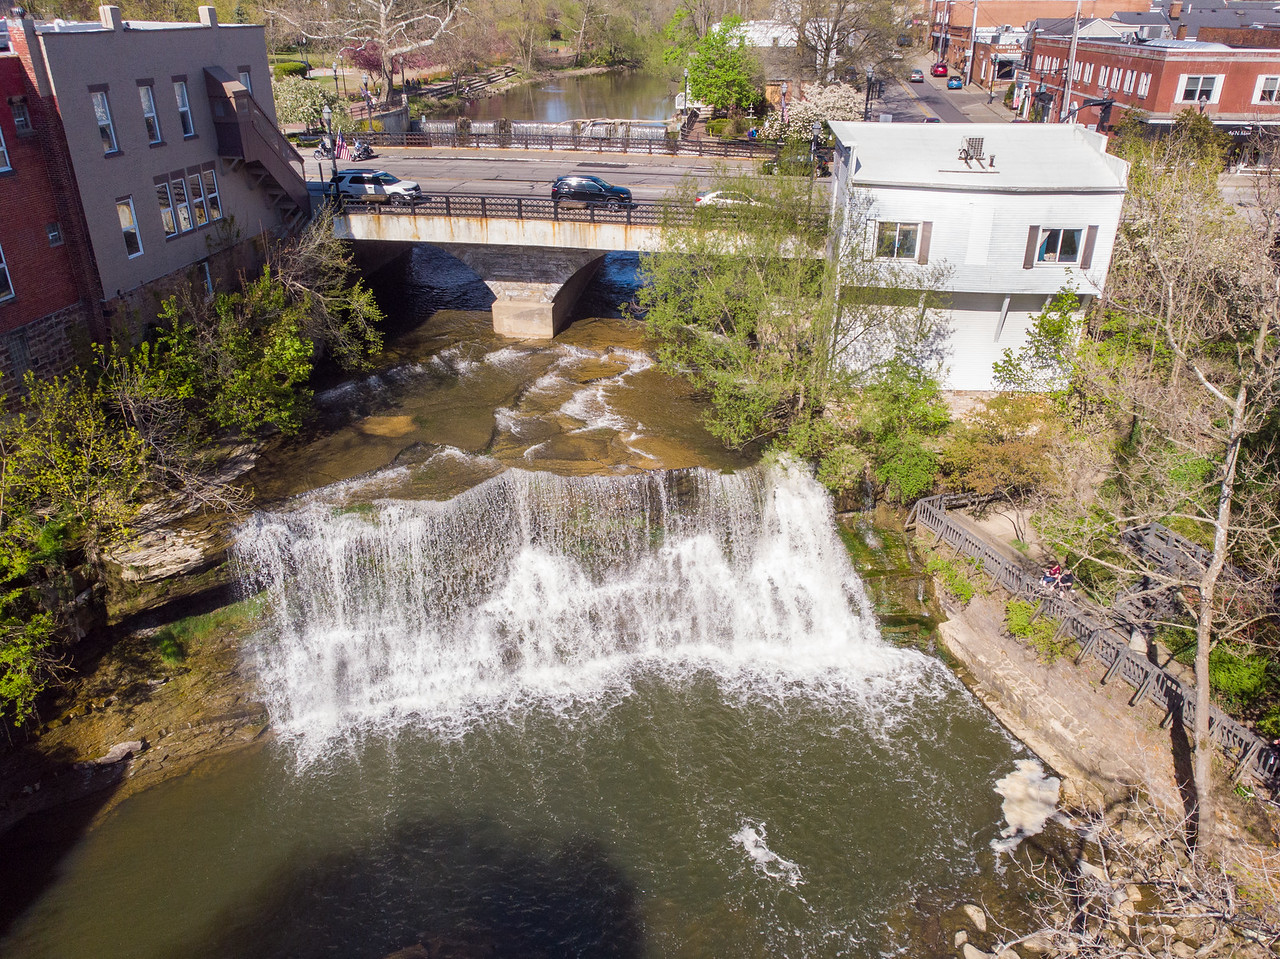 Chagrin Falls in Ohio